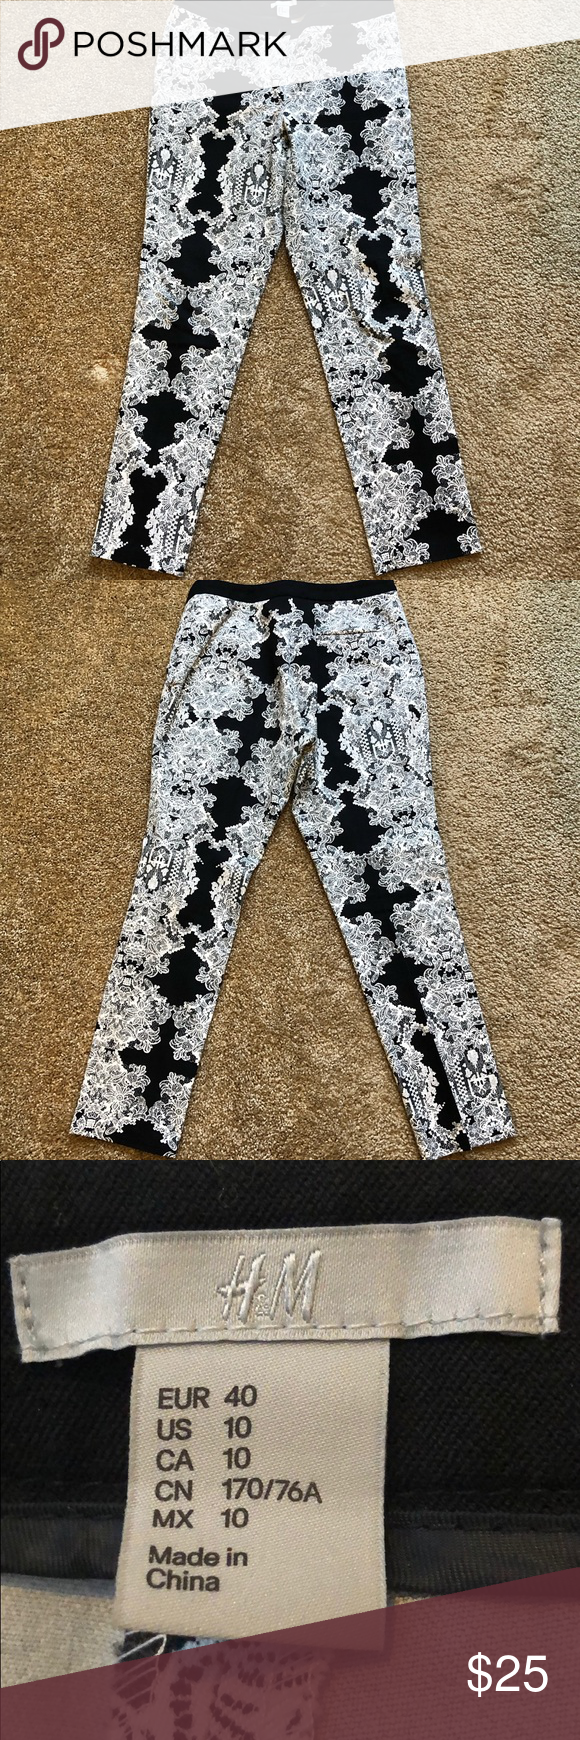 Black and White Slacks Ankle-length pants in cotton/elastin fabric with a regular waist, zip fly, and hook-and-eye fastener. Diagonal side pockets, mock welt back pockets, and legs with creases. H&M Pants Ankle & Cropped #whiteslacks Black and White Slacks Ankle-length pants in cotton/elastin fabric with a regular waist, zip fly, and hook-and-eye fastener. Diagonal side pockets, mock welt back pockets, and legs with creases. H&M Pants Ankle & Cropped #whiteslacks Black and White Slacks Ankle-len #whiteslacks